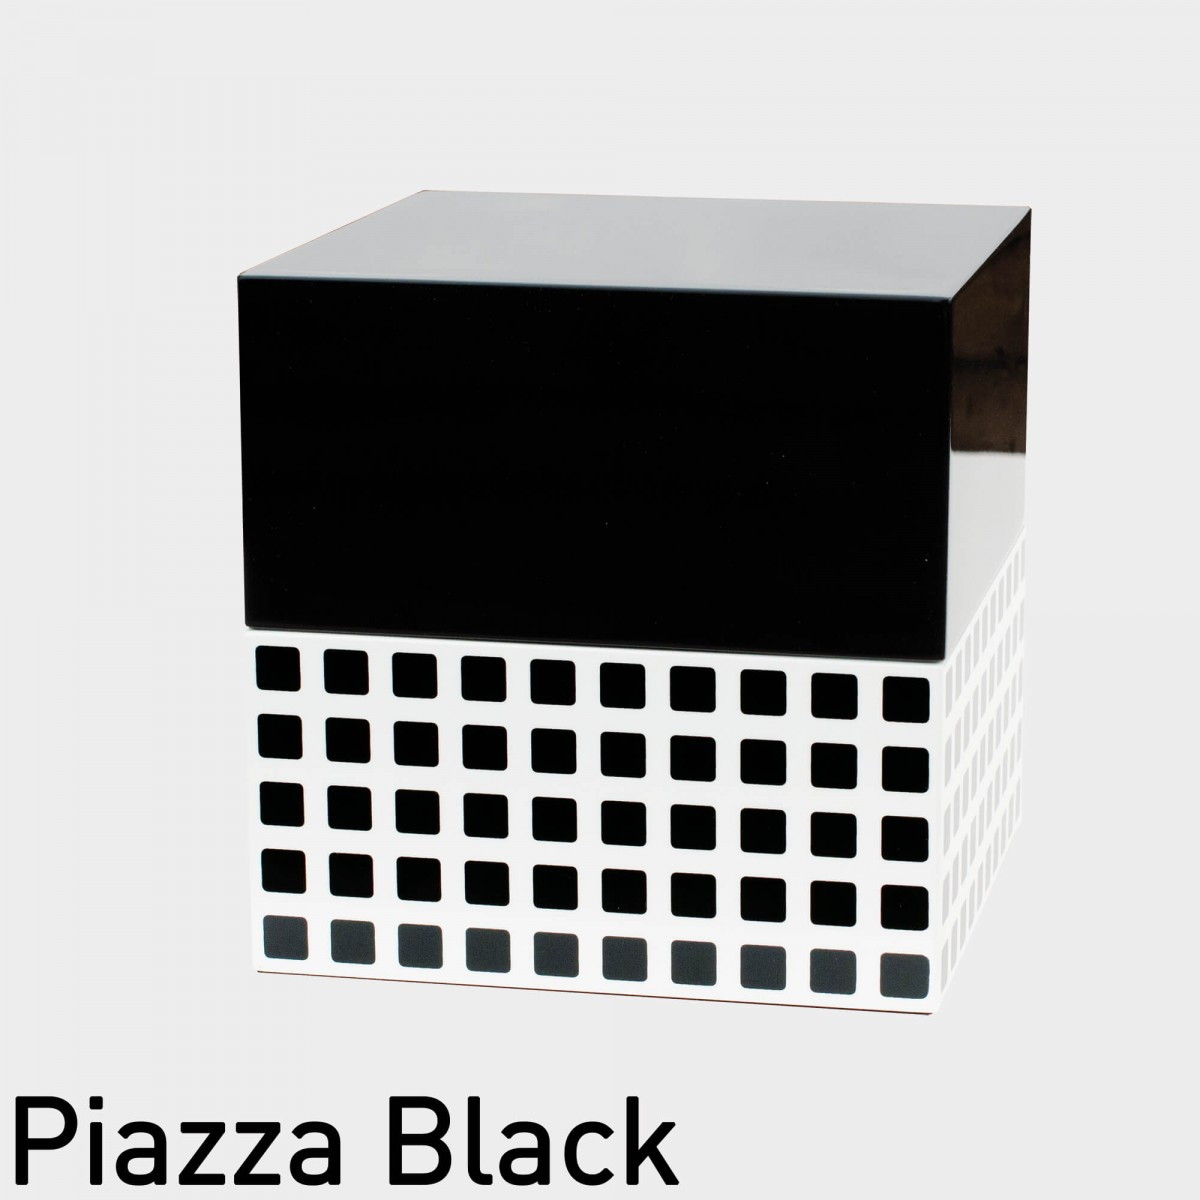 Remember Schmuckbox Jewel Cube - Piazza Black